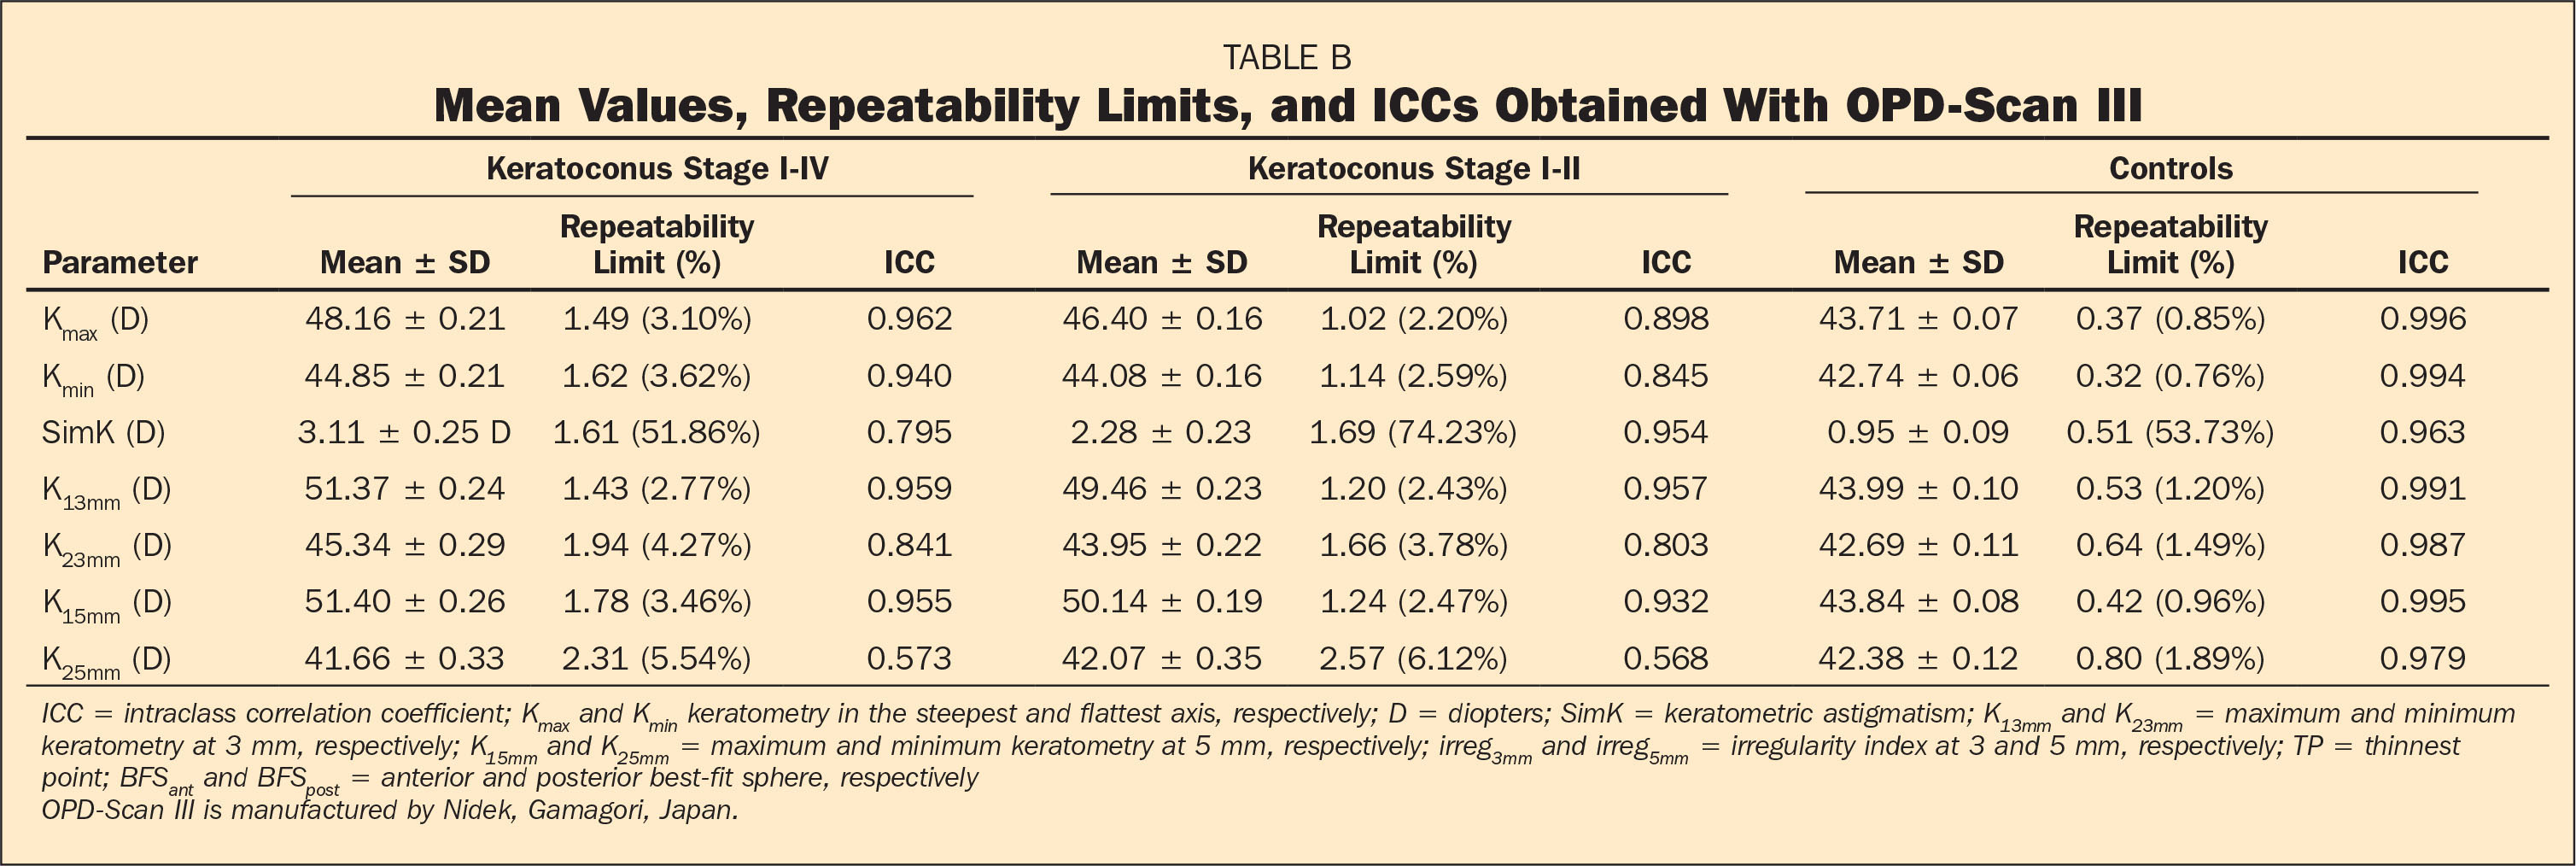 Mean Values, Repeatability Limits, and ICCs Obtained With OPD-Scan III